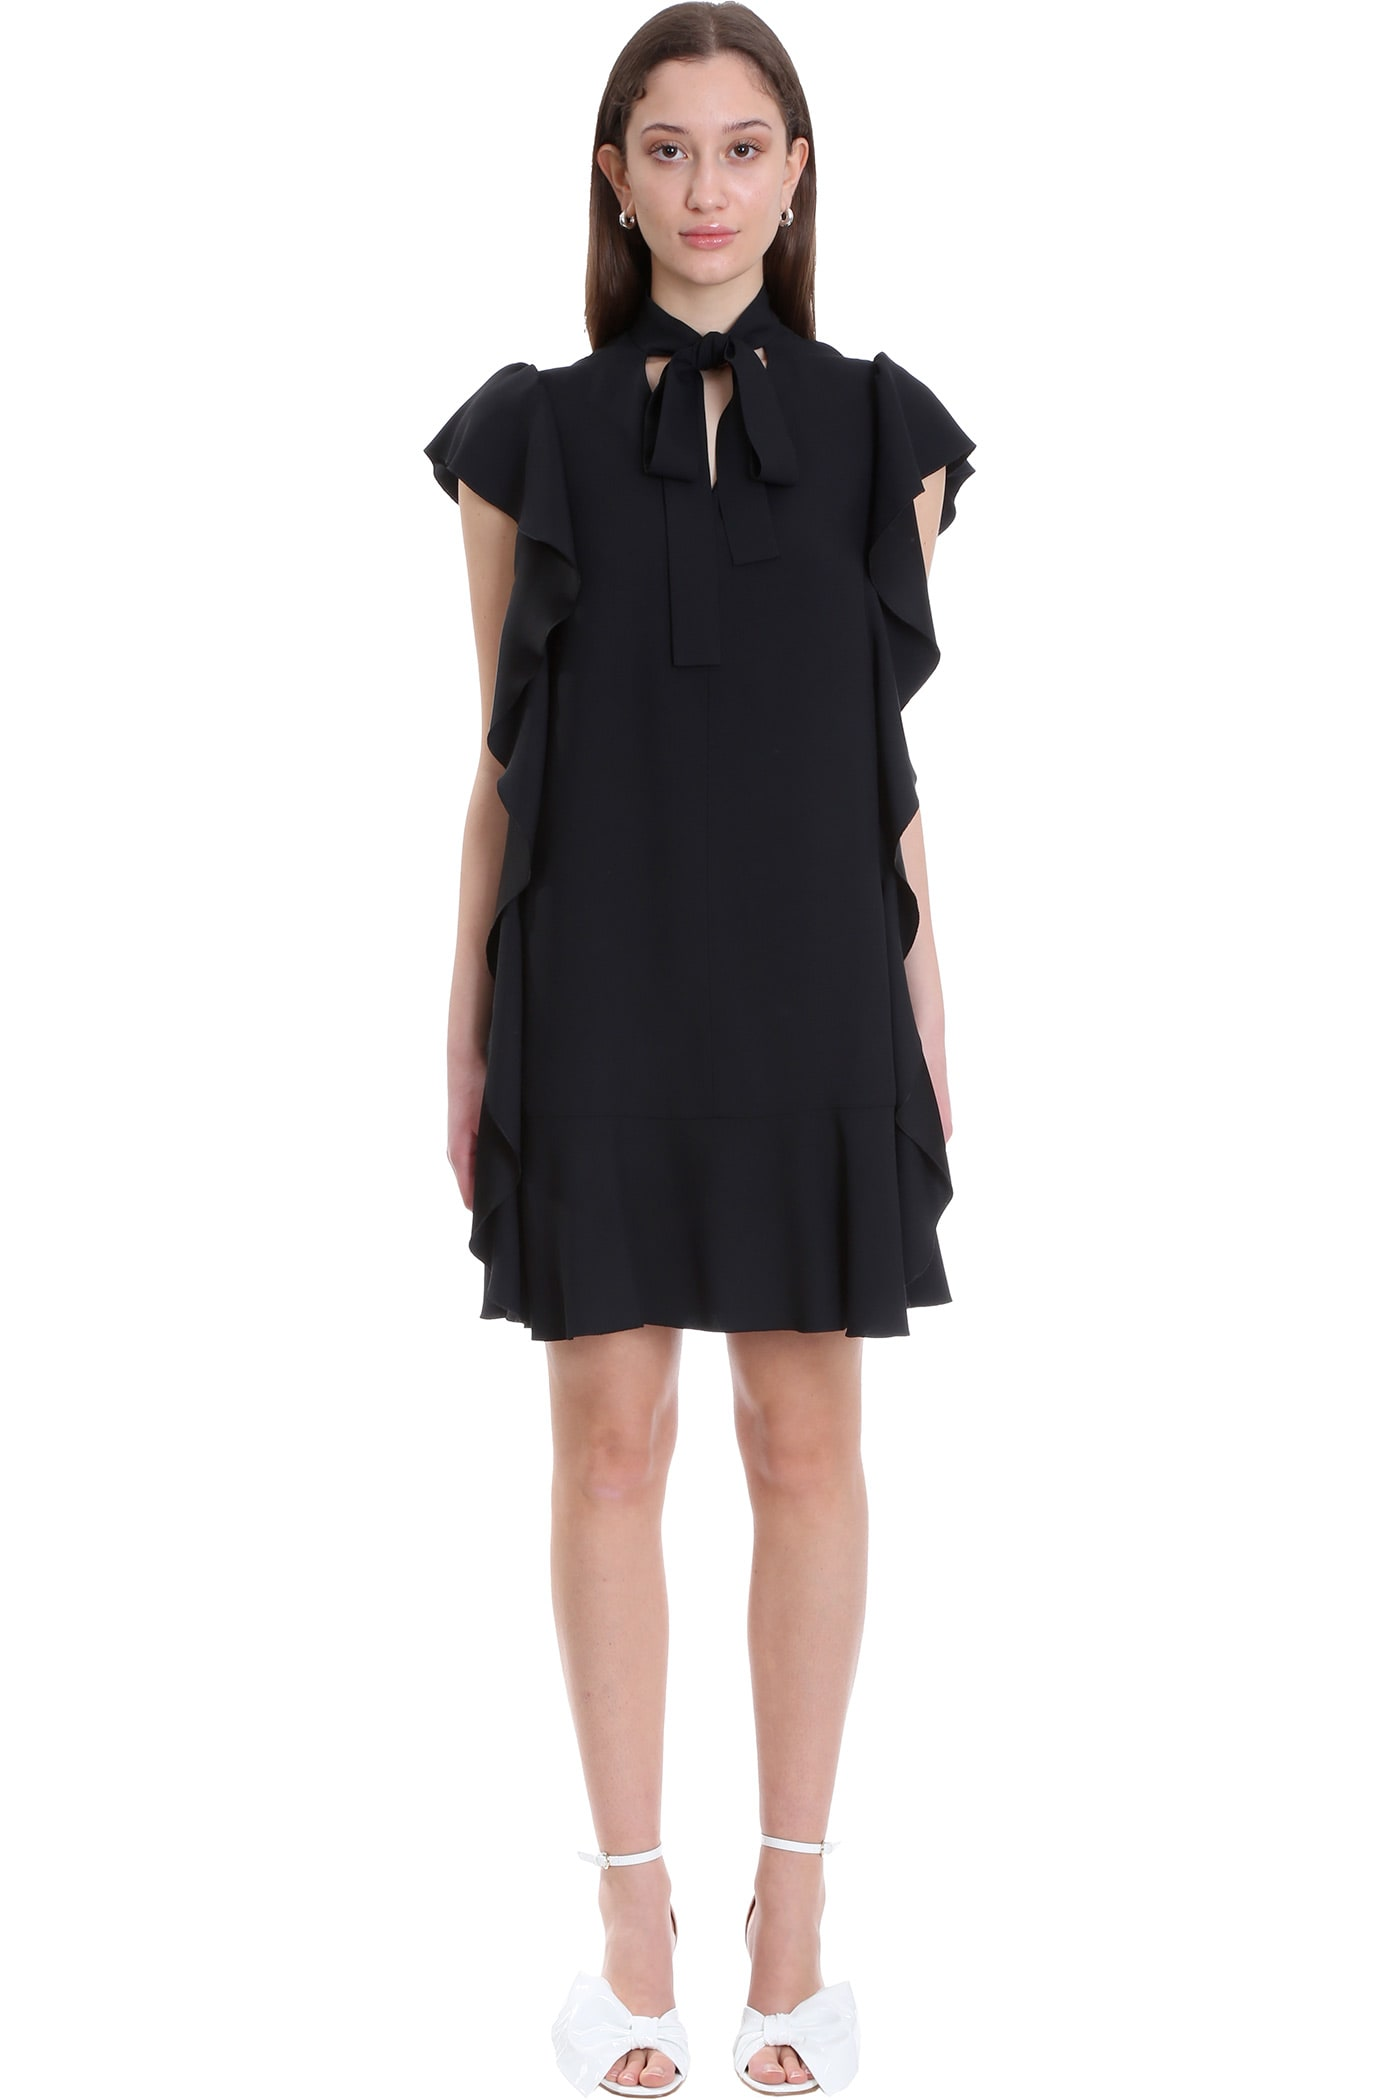 Buy RED Valentino Dress In Black Viscose online, shop RED Valentino with free shipping